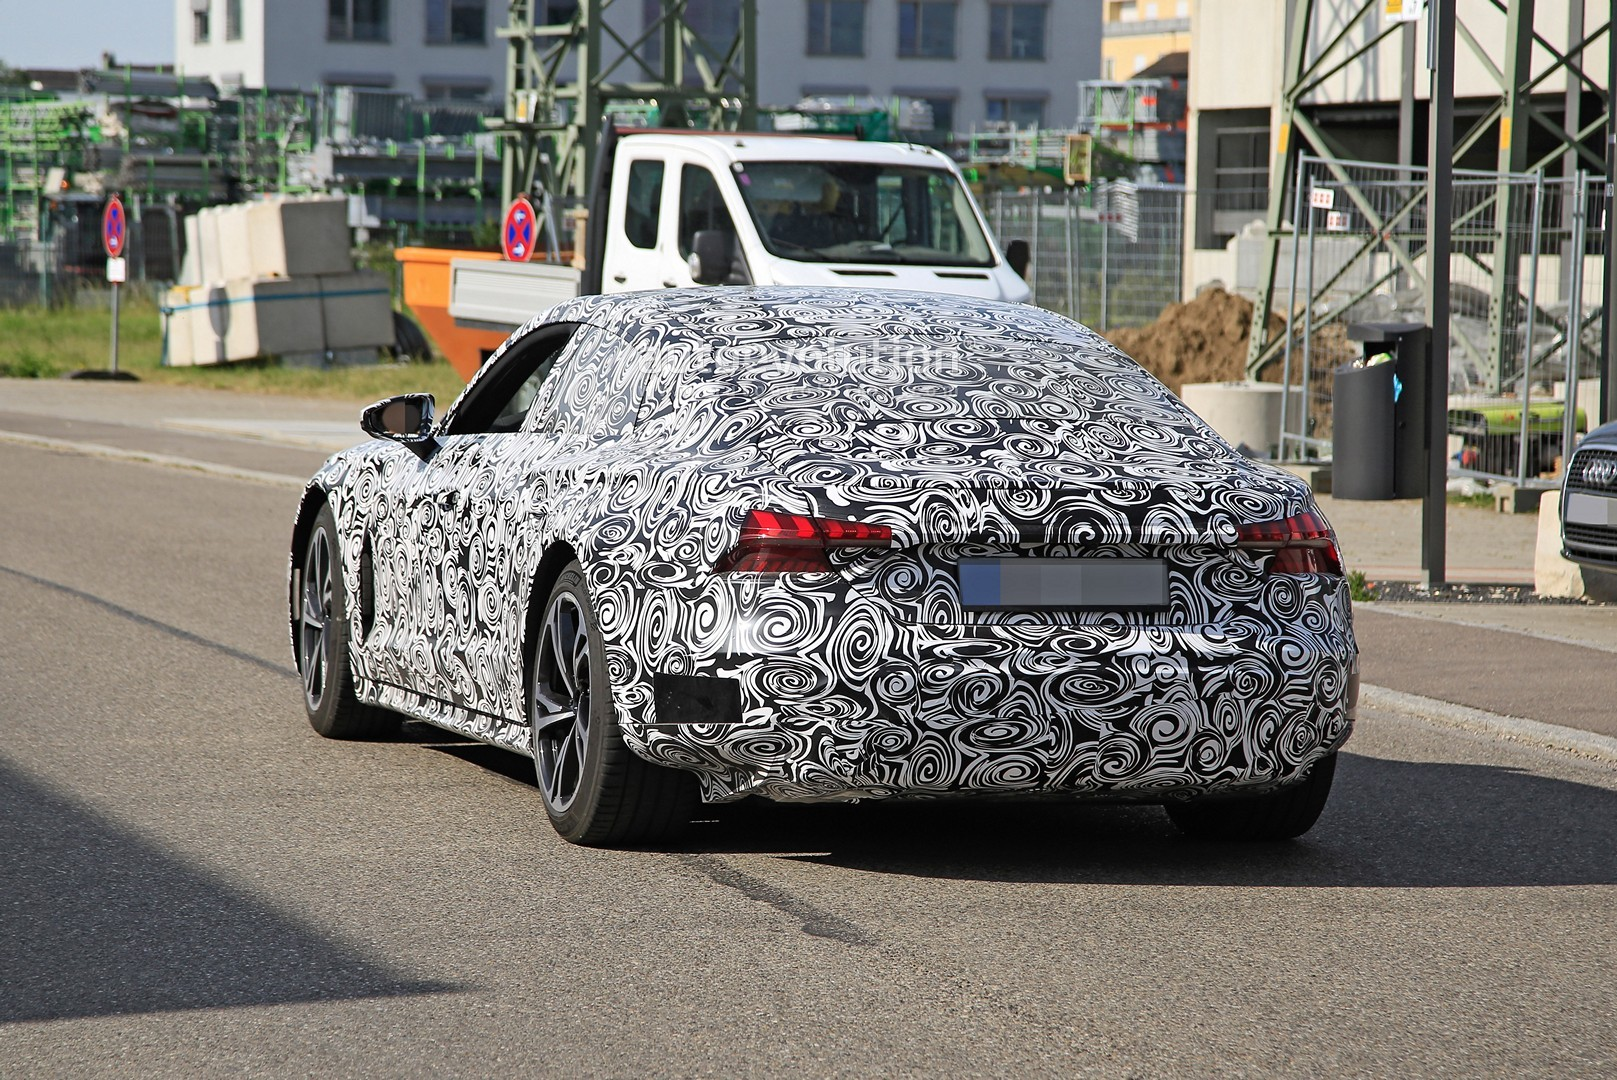 2021-audi-​e-tron-gt-​spotted-10​0000-ev-ge​tting-read​y-for-prod​uction_10